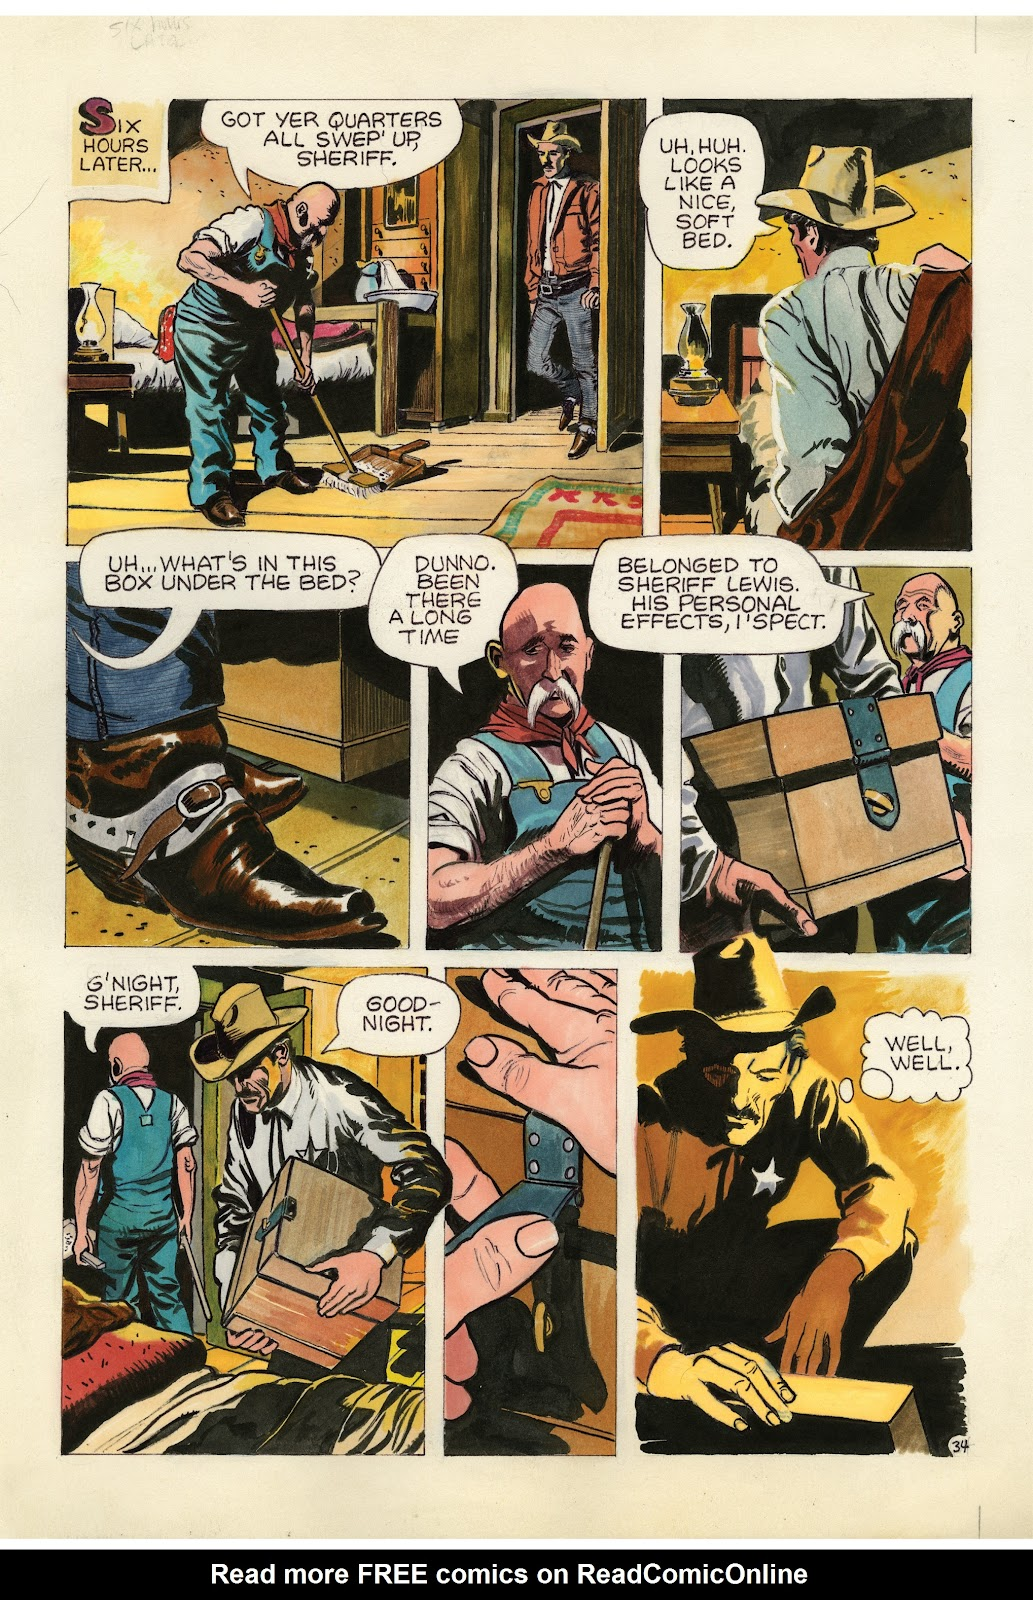 Read online Doug Wildey's Rio: The Complete Saga comic -  Issue # TPB (Part 1) - 100